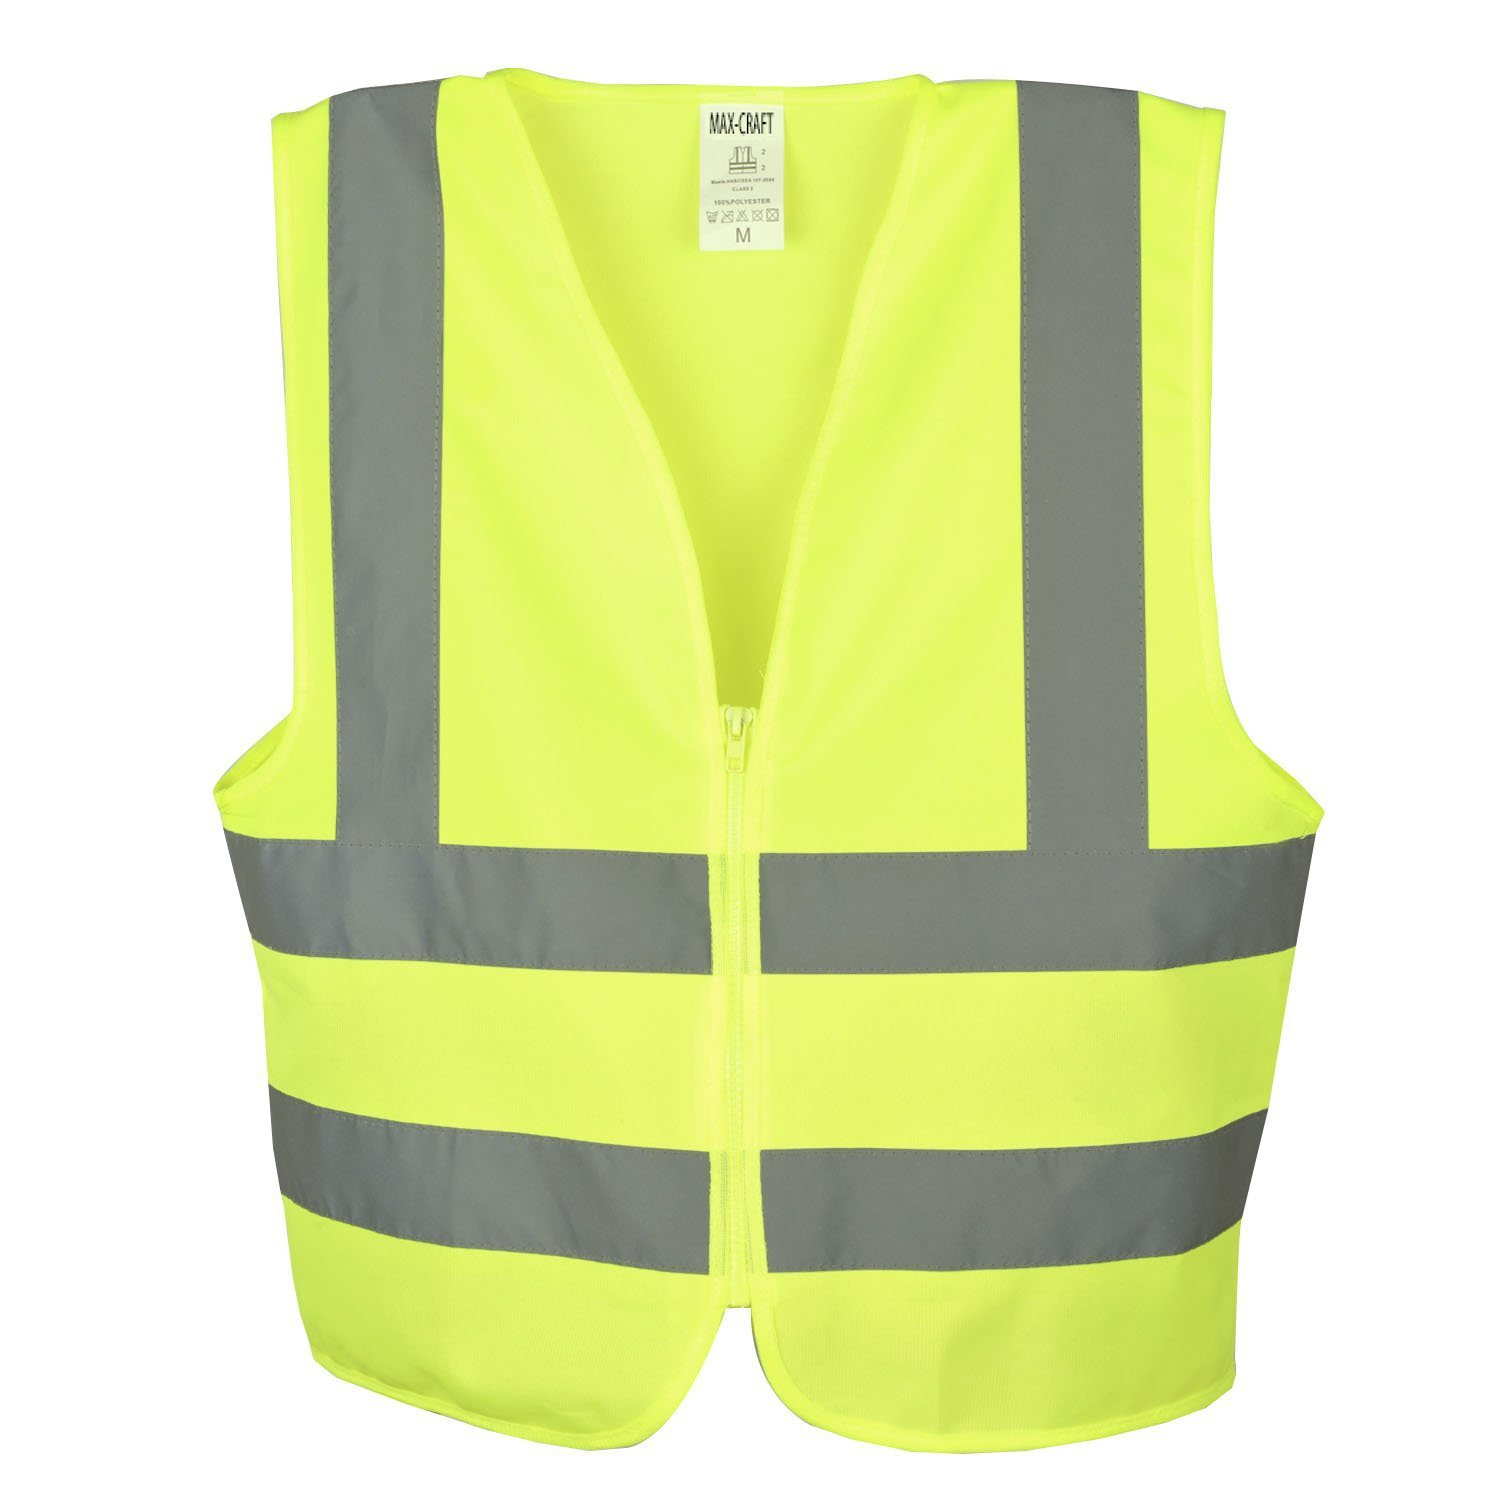 897f9008 Max-Craft Safety Vest Neon High Visibility Highly Breatheable with  Reflective Strips Zipper Front Safety Vest ANSI Standard Yellow (SV1001A)  (XXX Large)